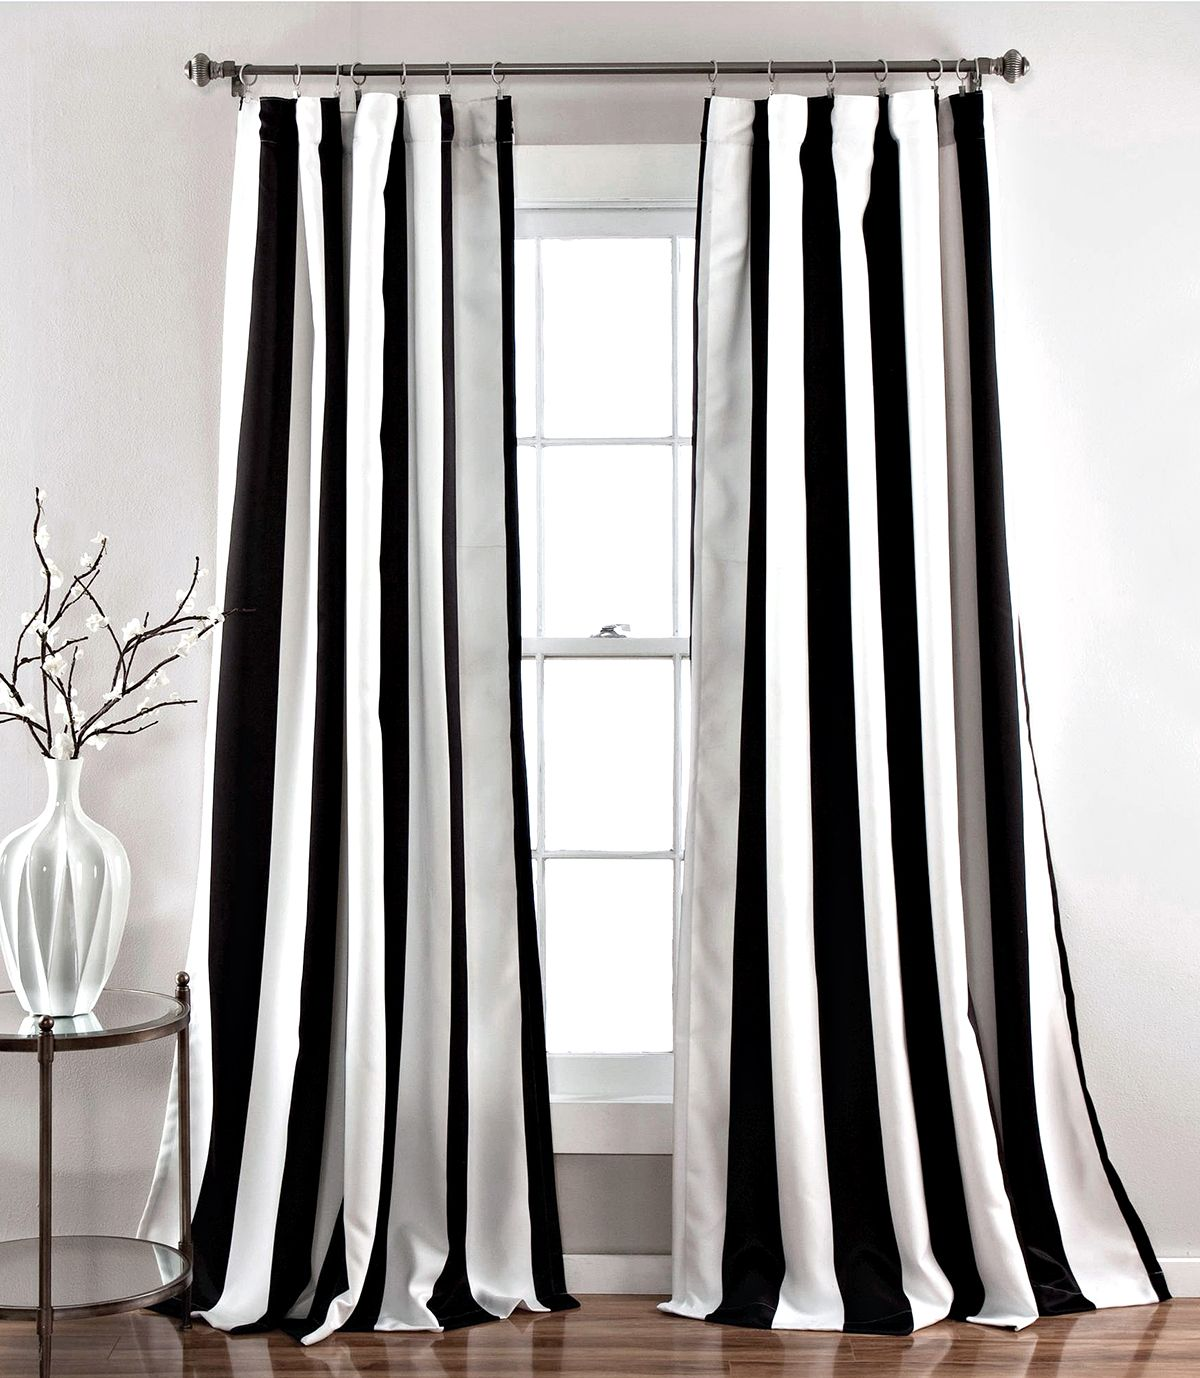 My Favorite Black And White Curtains Cuckoo4design Striped Room Striped Curtains Lush Decor